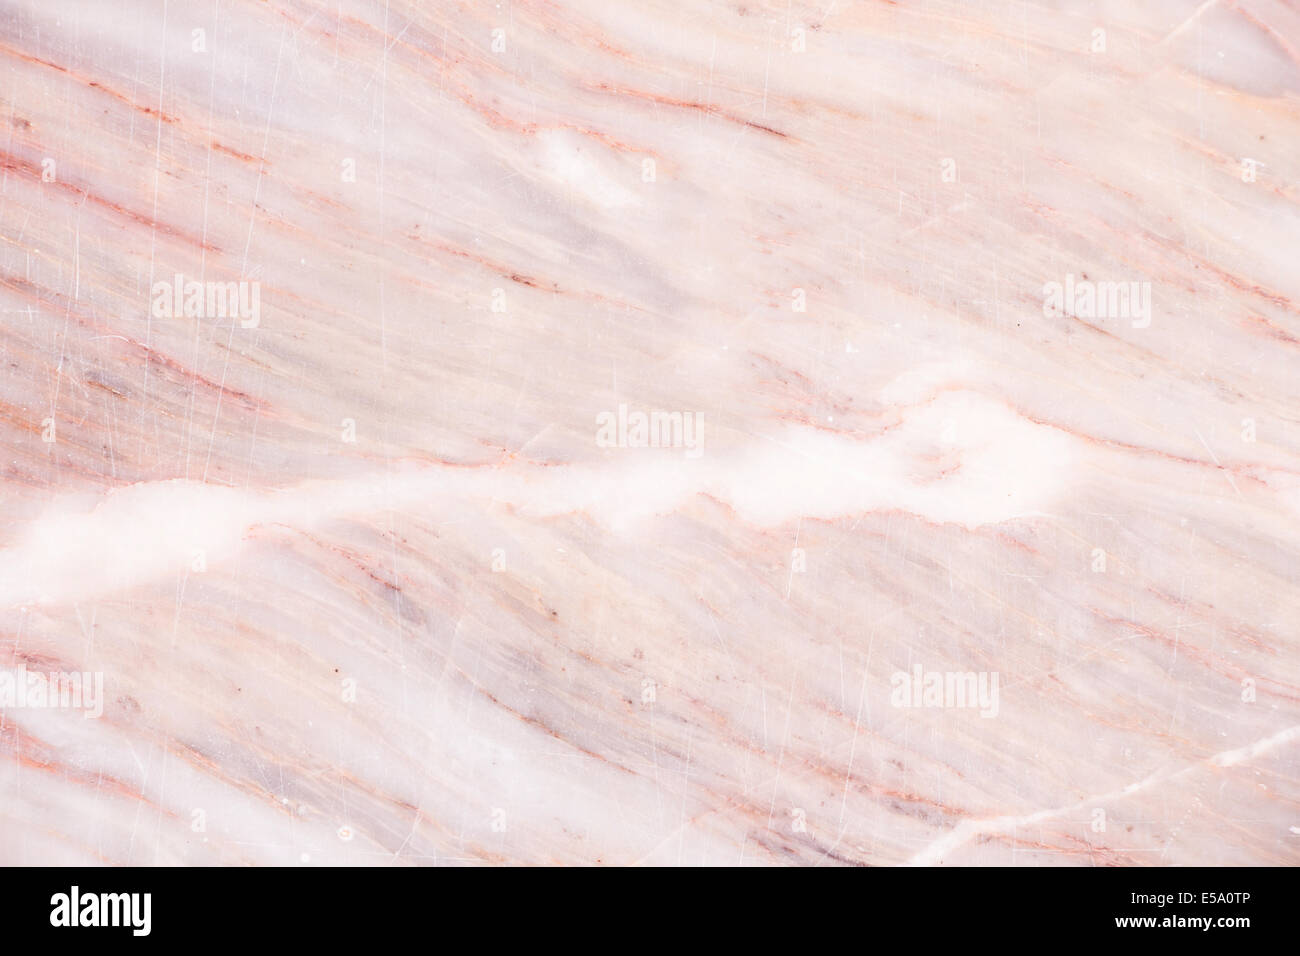 Beautiful white marble background or texture ceramic tile stock beautiful white marble background or texture ceramic tile dailygadgetfo Choice Image